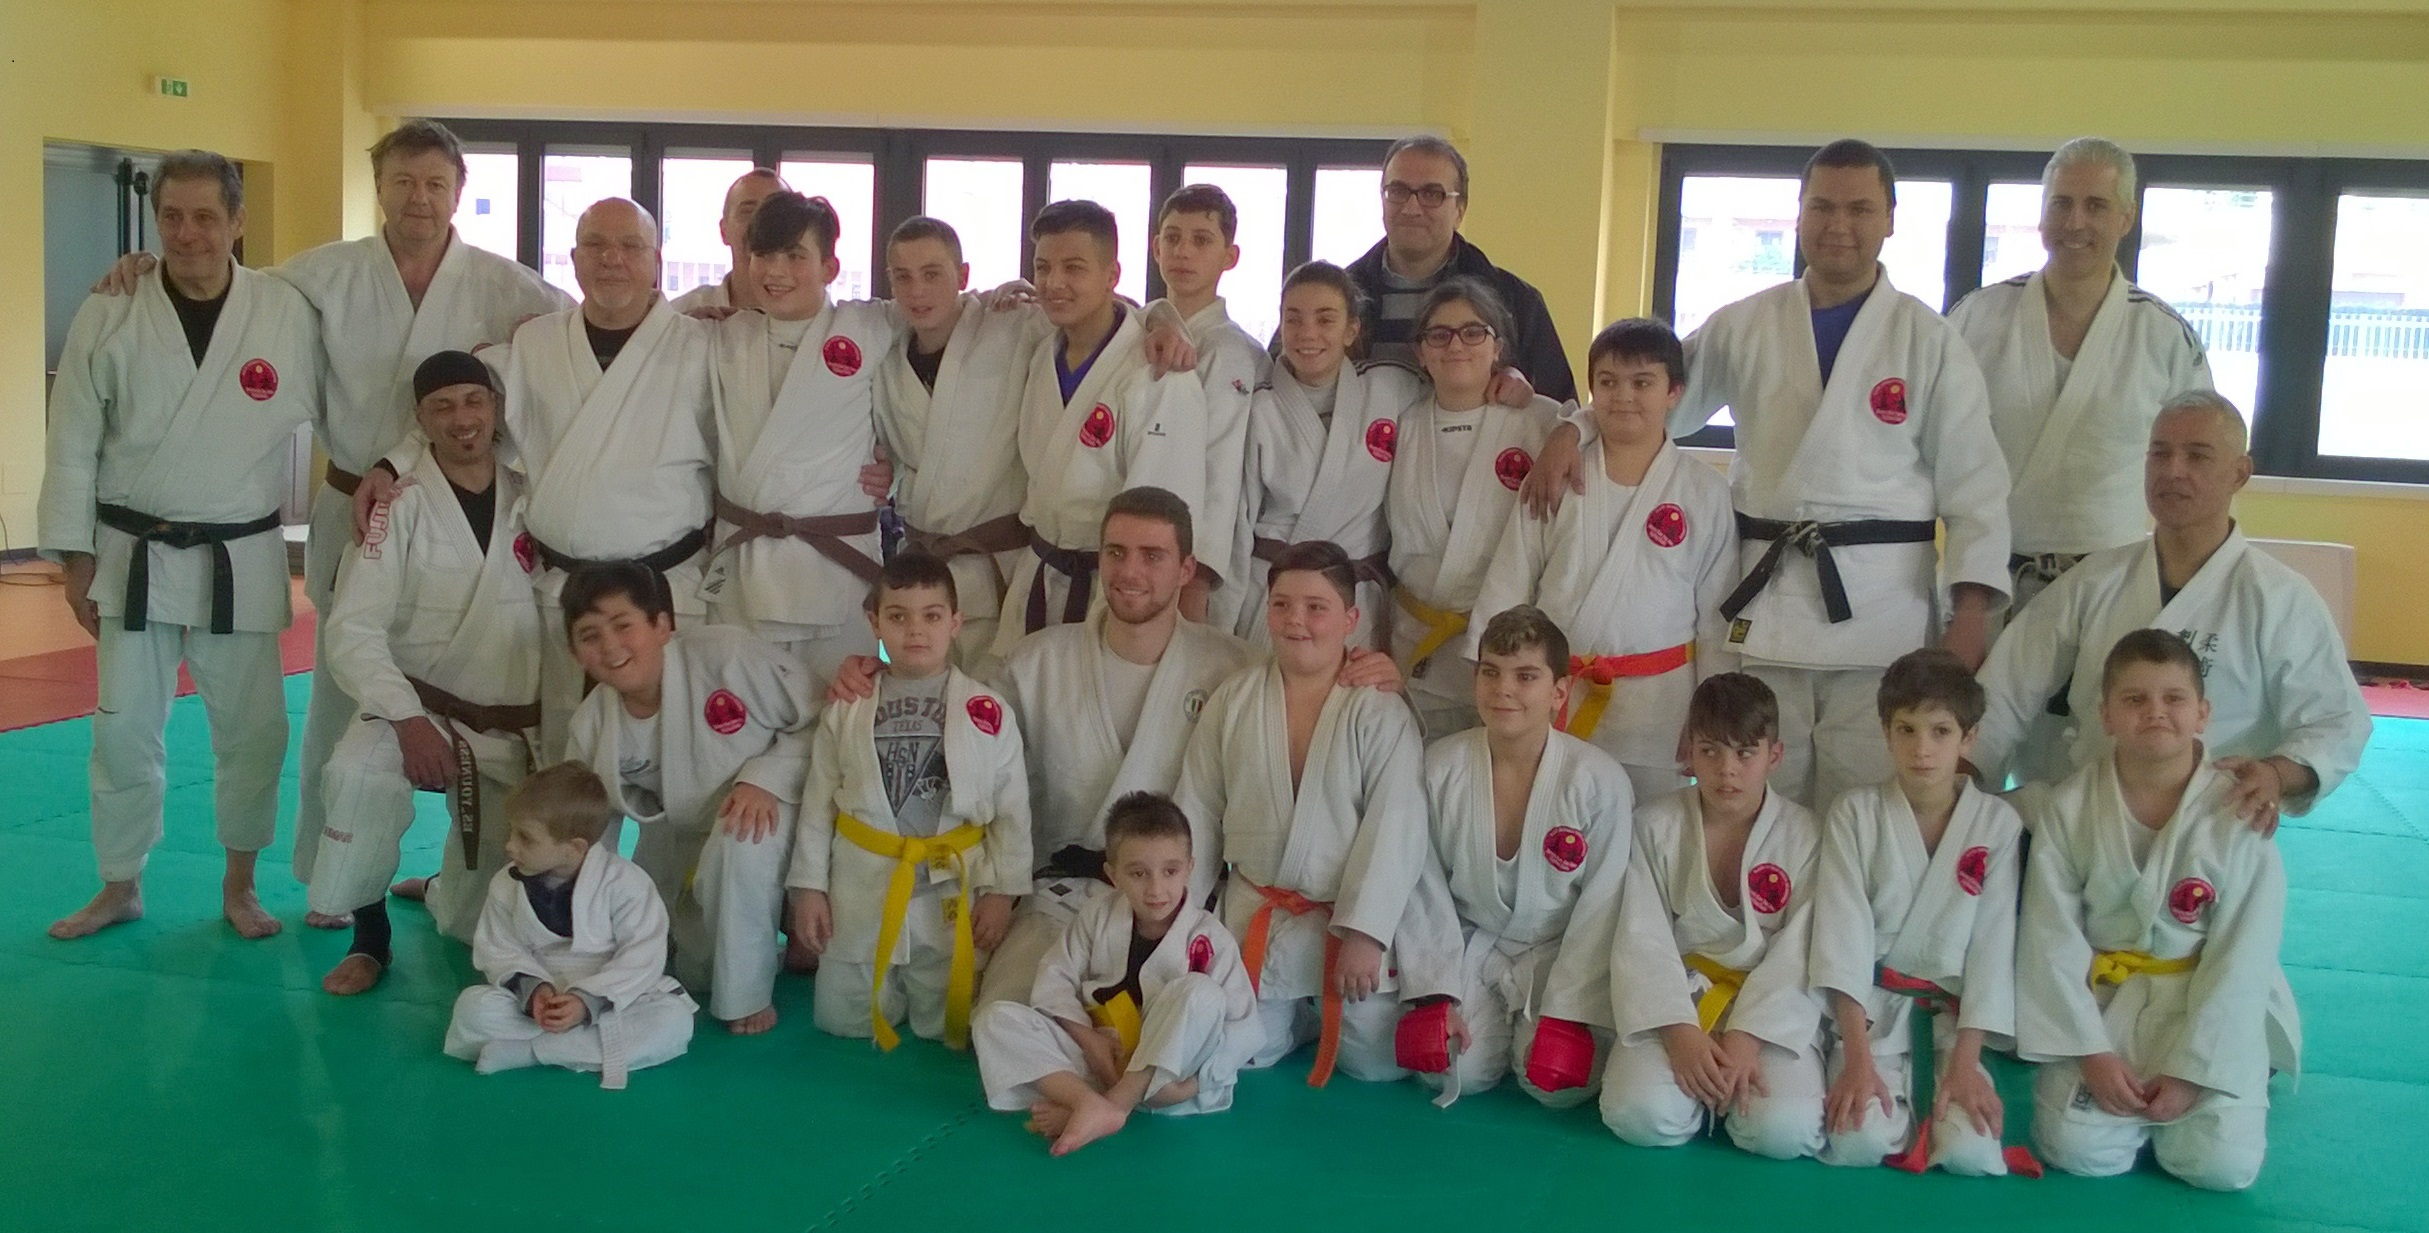 corsi di judo - ju-jitsu - fighting system - ne waza - grappling